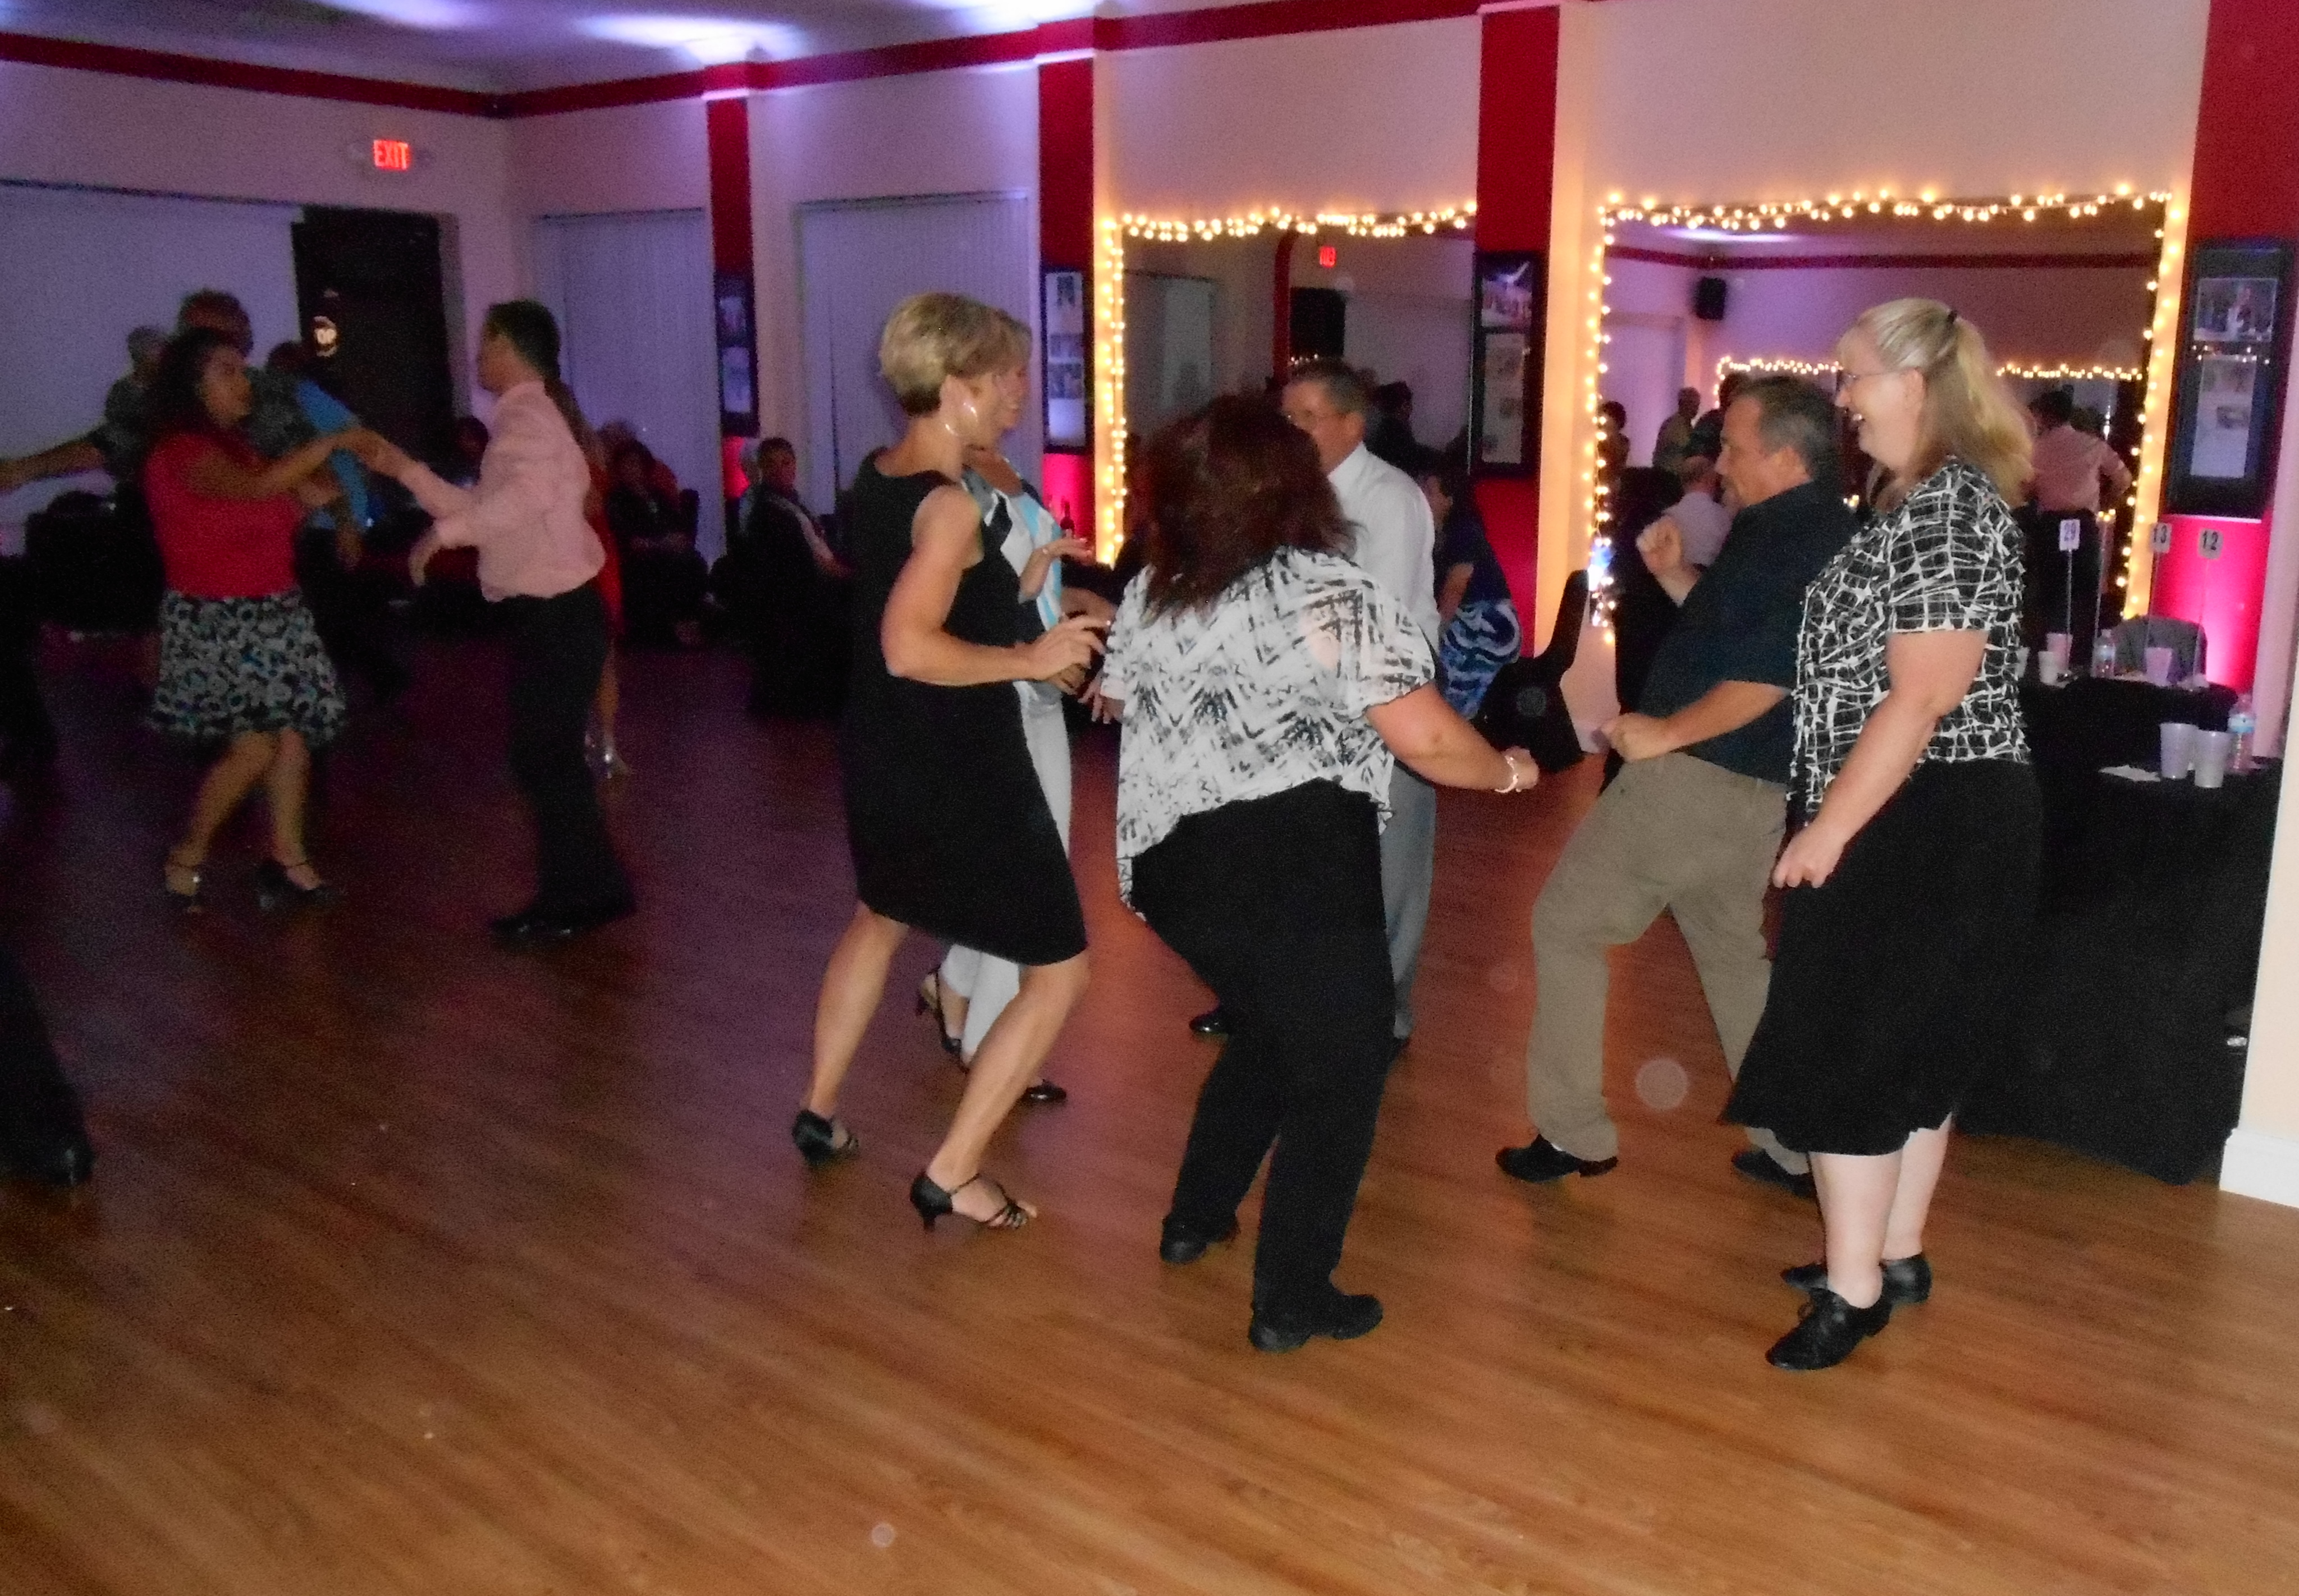 Dancing fun at Jacksonville Dance Center - August 2014